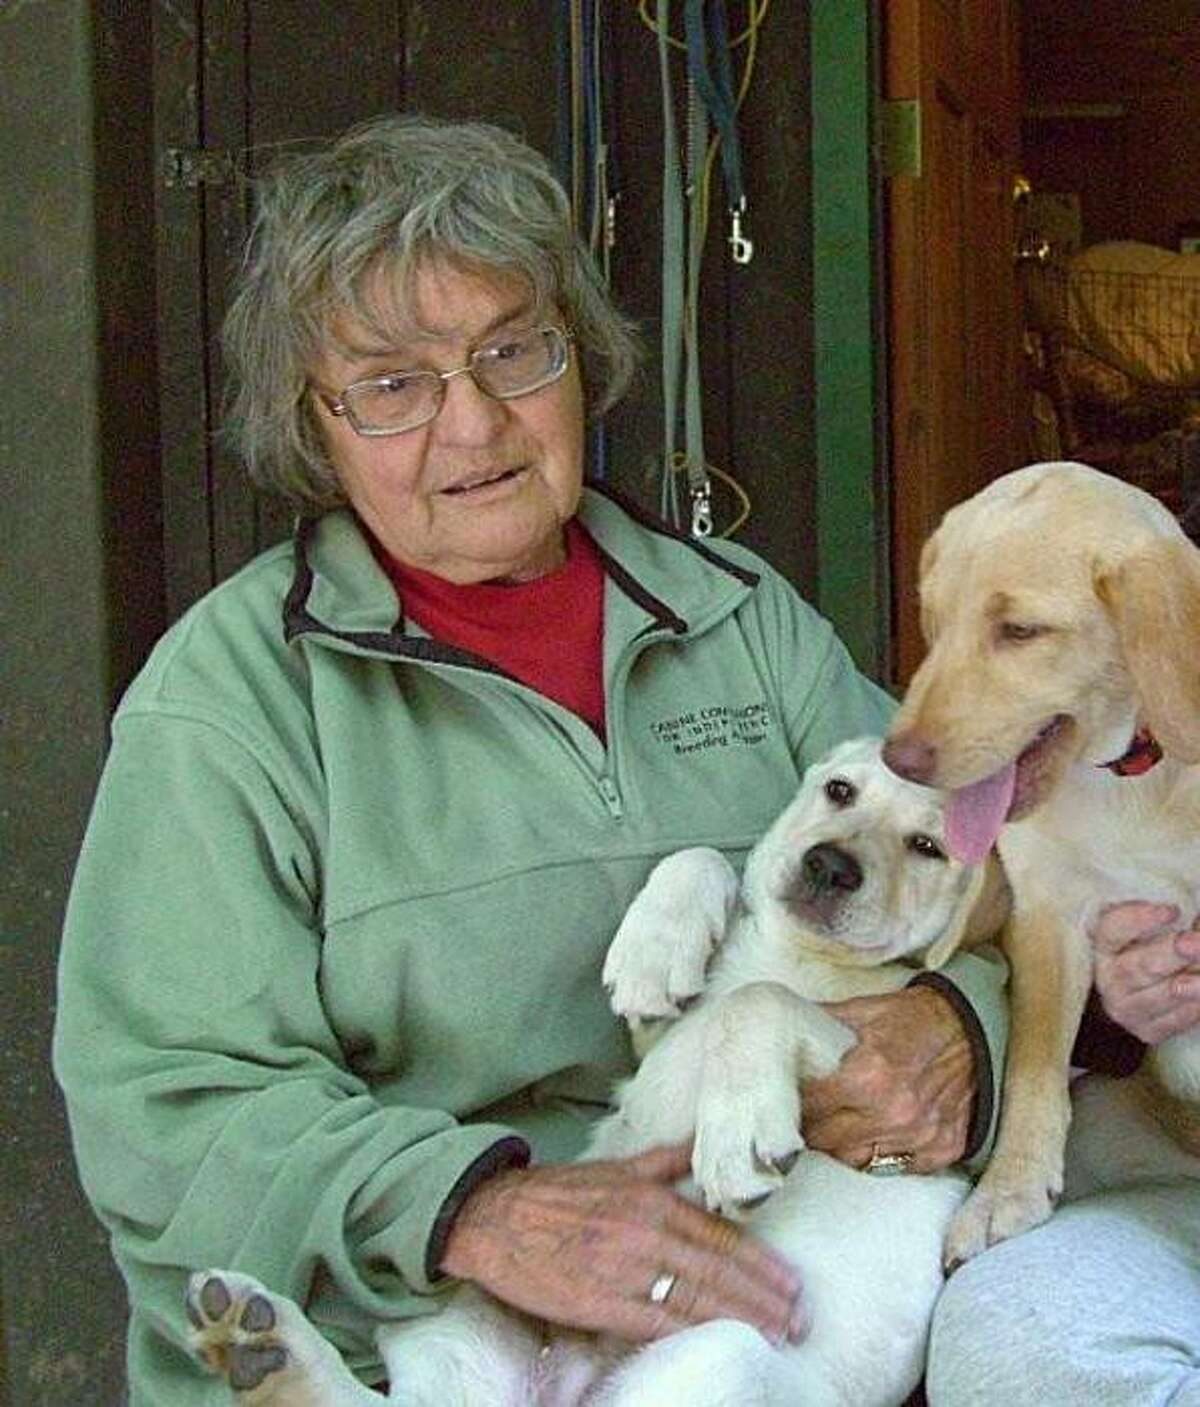 Search crews are looking for a 77-year-old woman, Silvia Lange, who disappeared at Point Reyes National Seashore over the weekend.